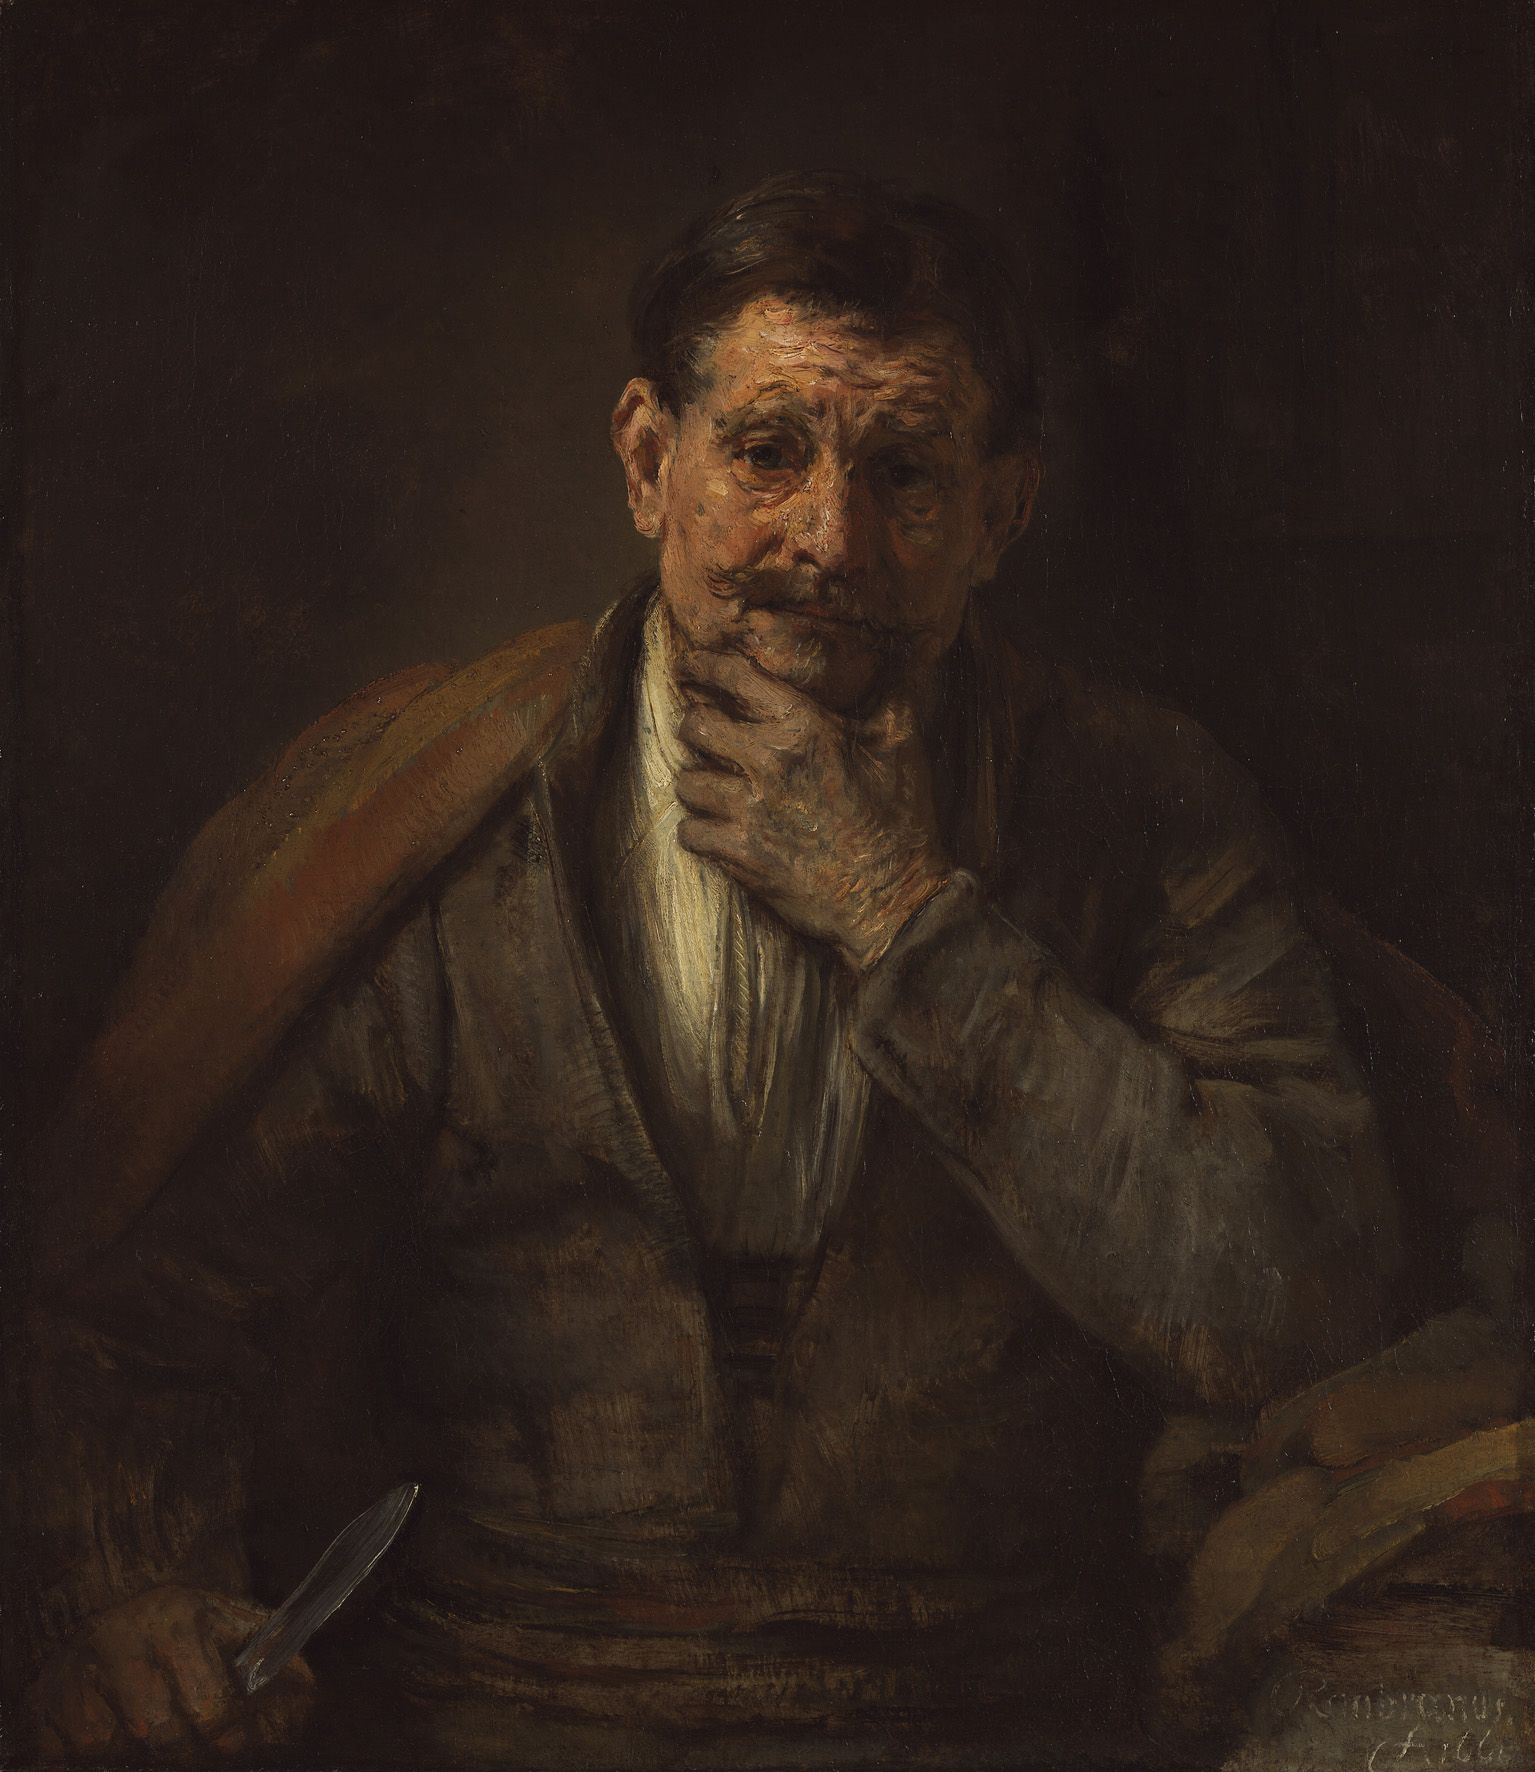 Rembrandt, The Apostle Bartholomew, 1661. Oil on canvas 86.7 x 75.6 cm © The J. Paul Getty Museum, Los Angeles, California (71.PA.15)